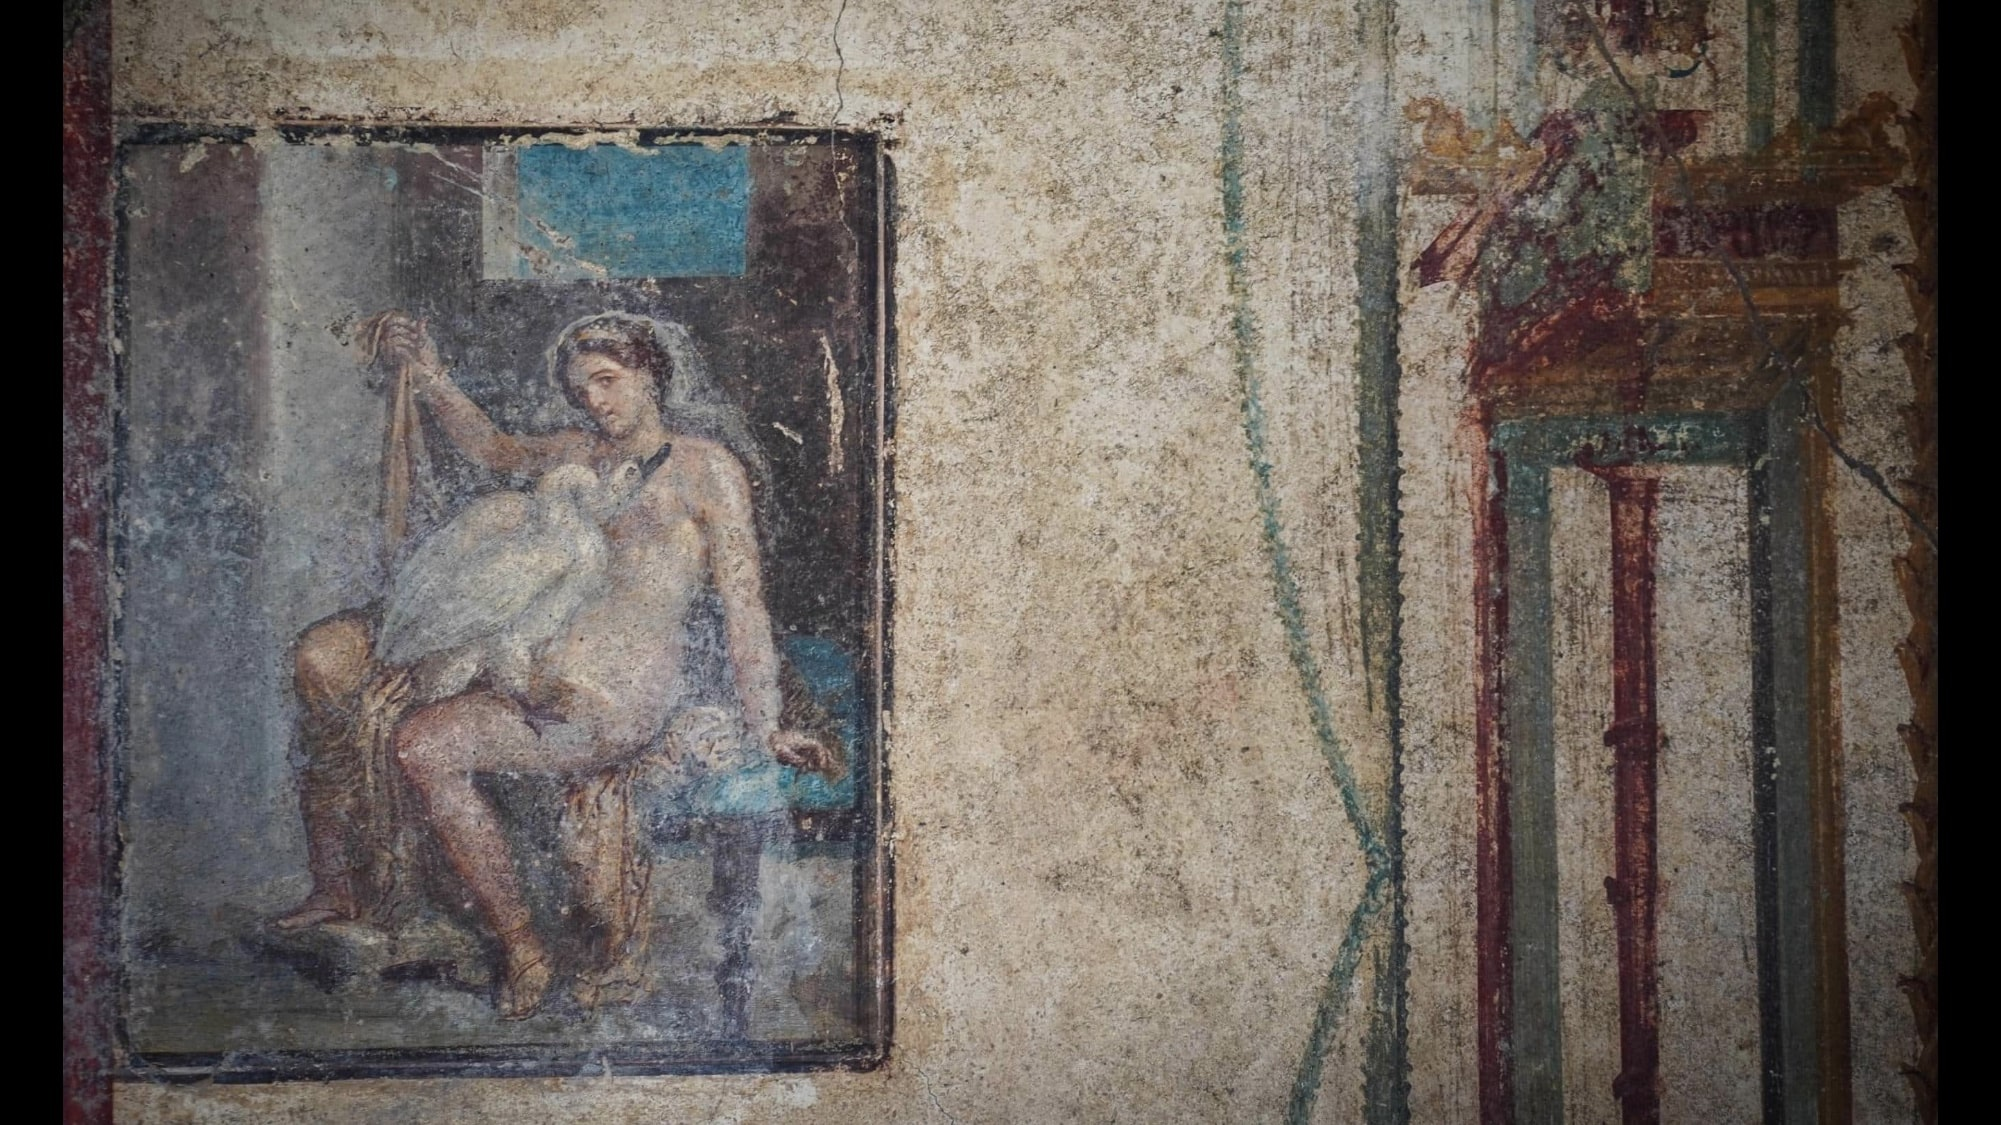 The monuments of the ancient pompeii